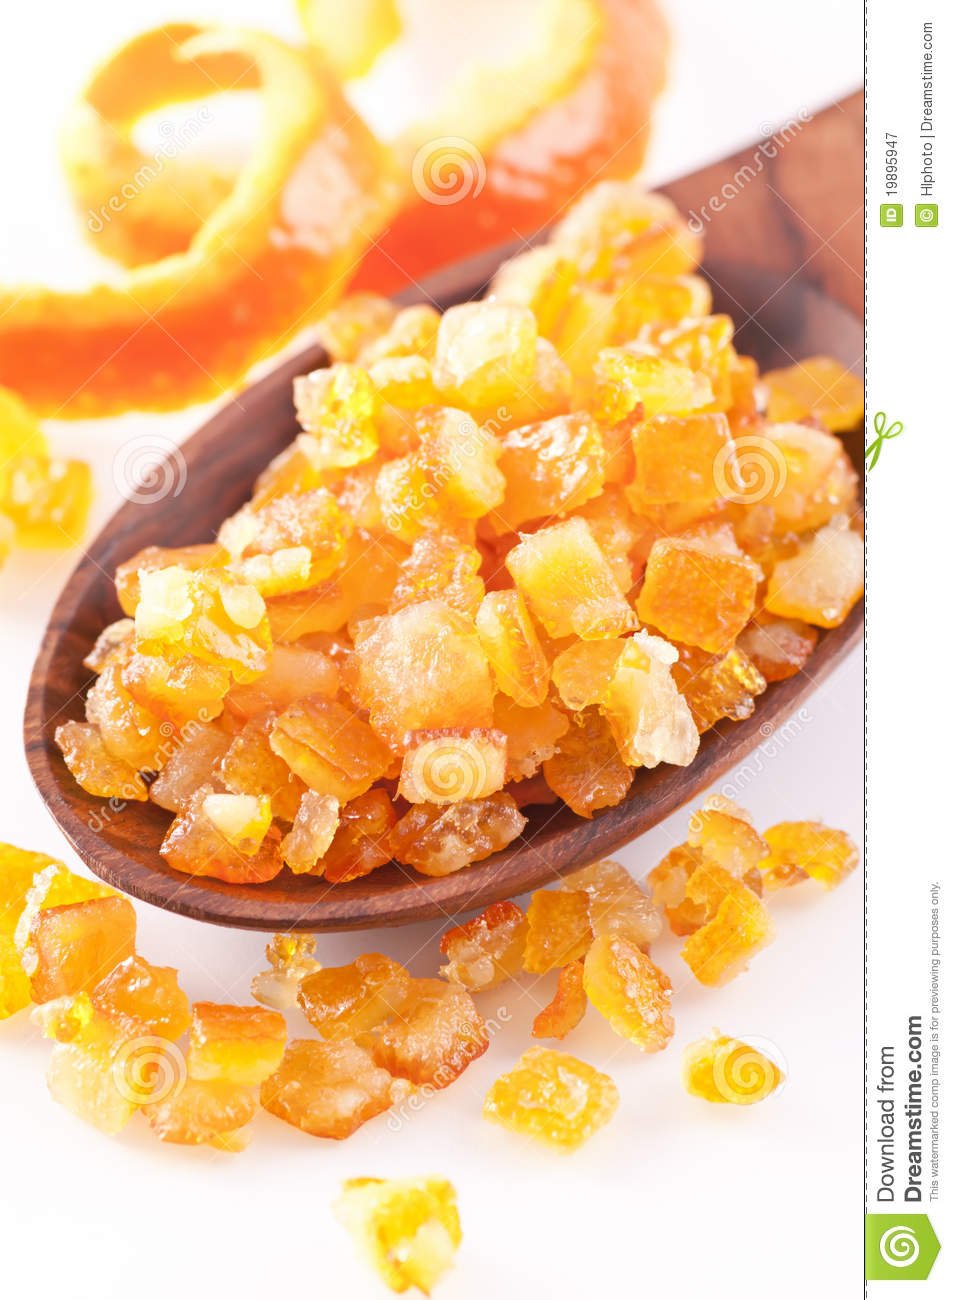 Candied Orange Peel Royalty Free Stock Photography - Image: 19895947